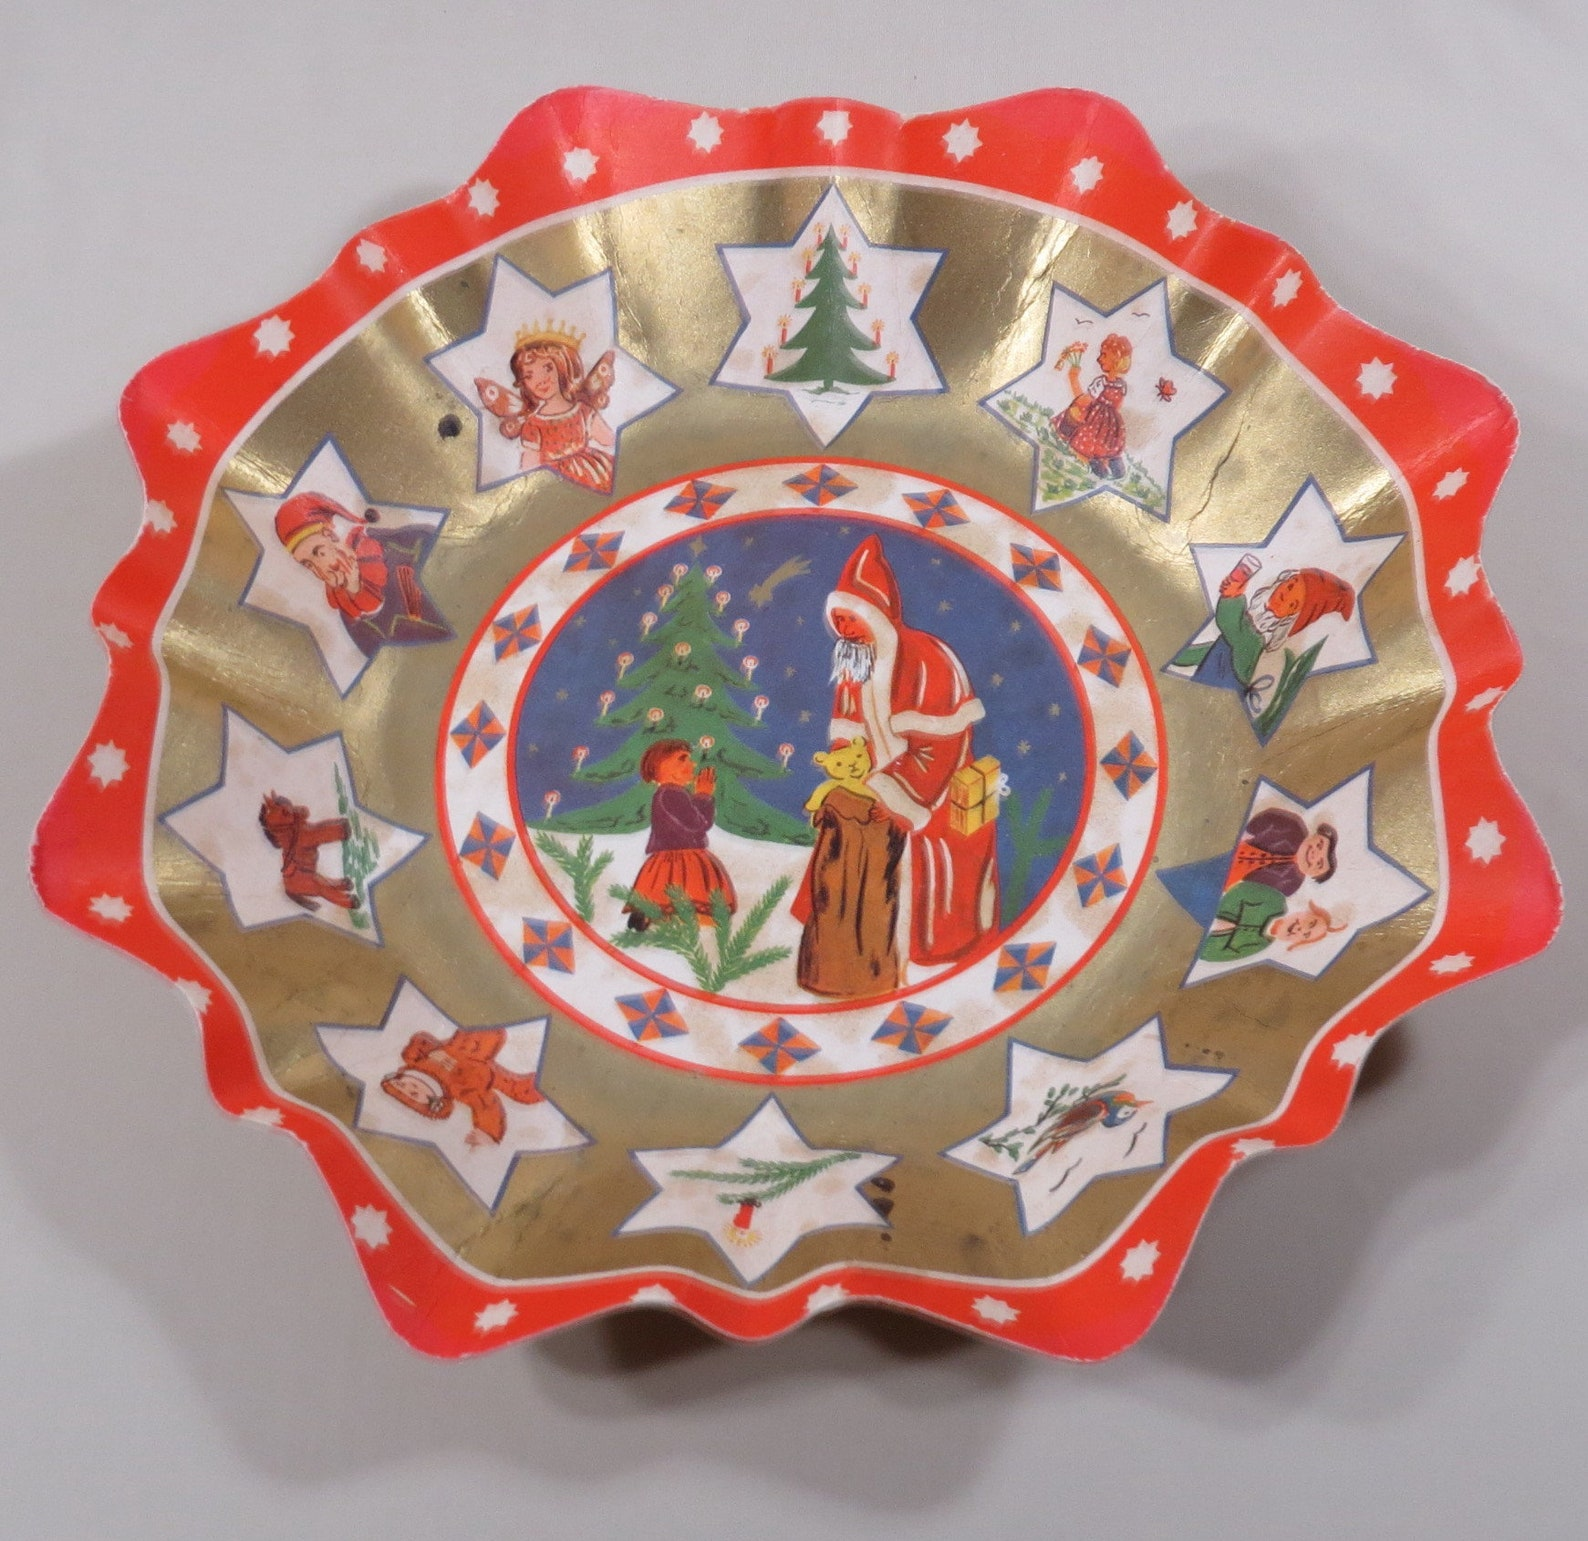 Vintage Christmas Thick Pressed Cardboard Candy Bowl // Made In Germany // Santa with Toys